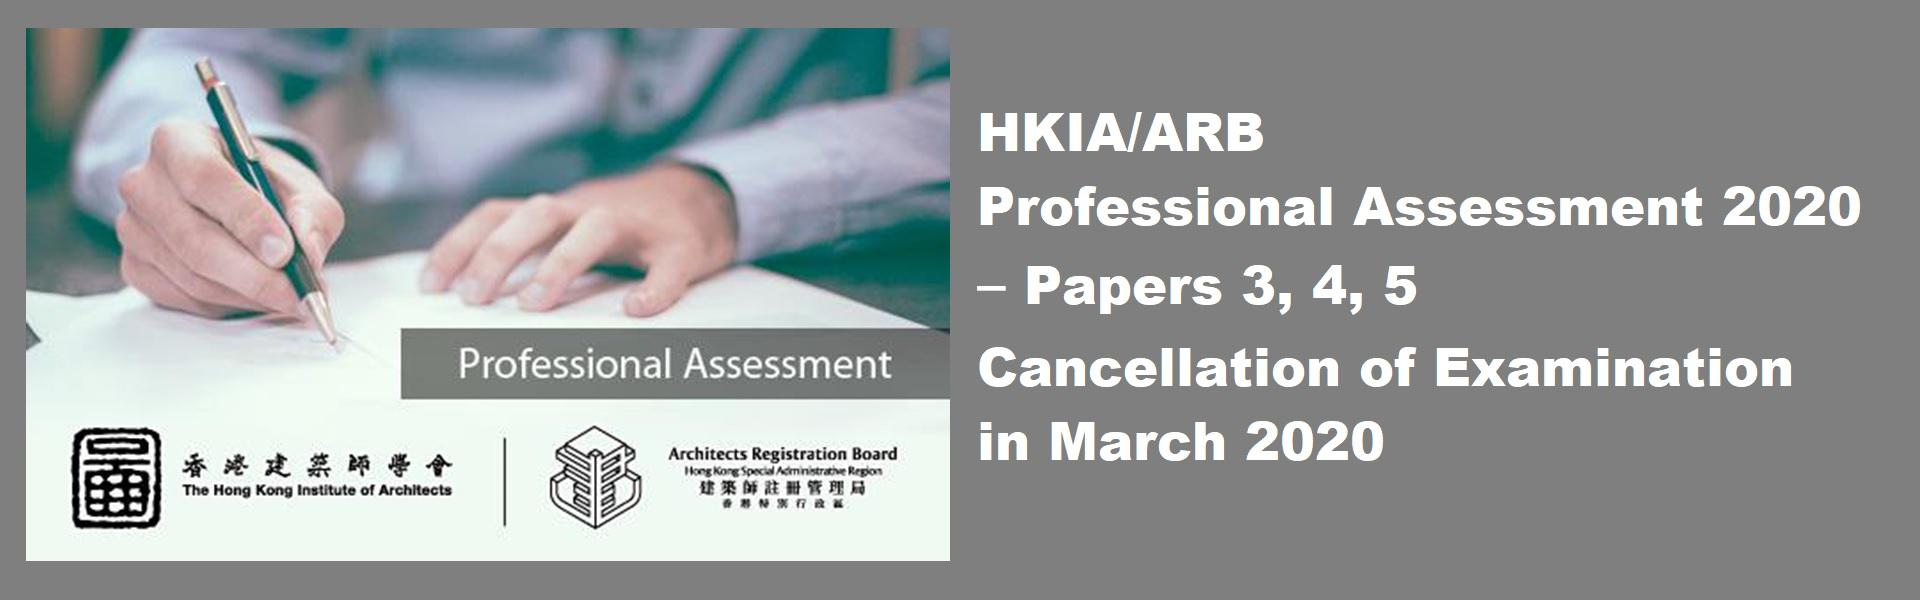 HKIA/ARB PA 2020 - Paper 3,4,5 Cancellation Exam in March 2020